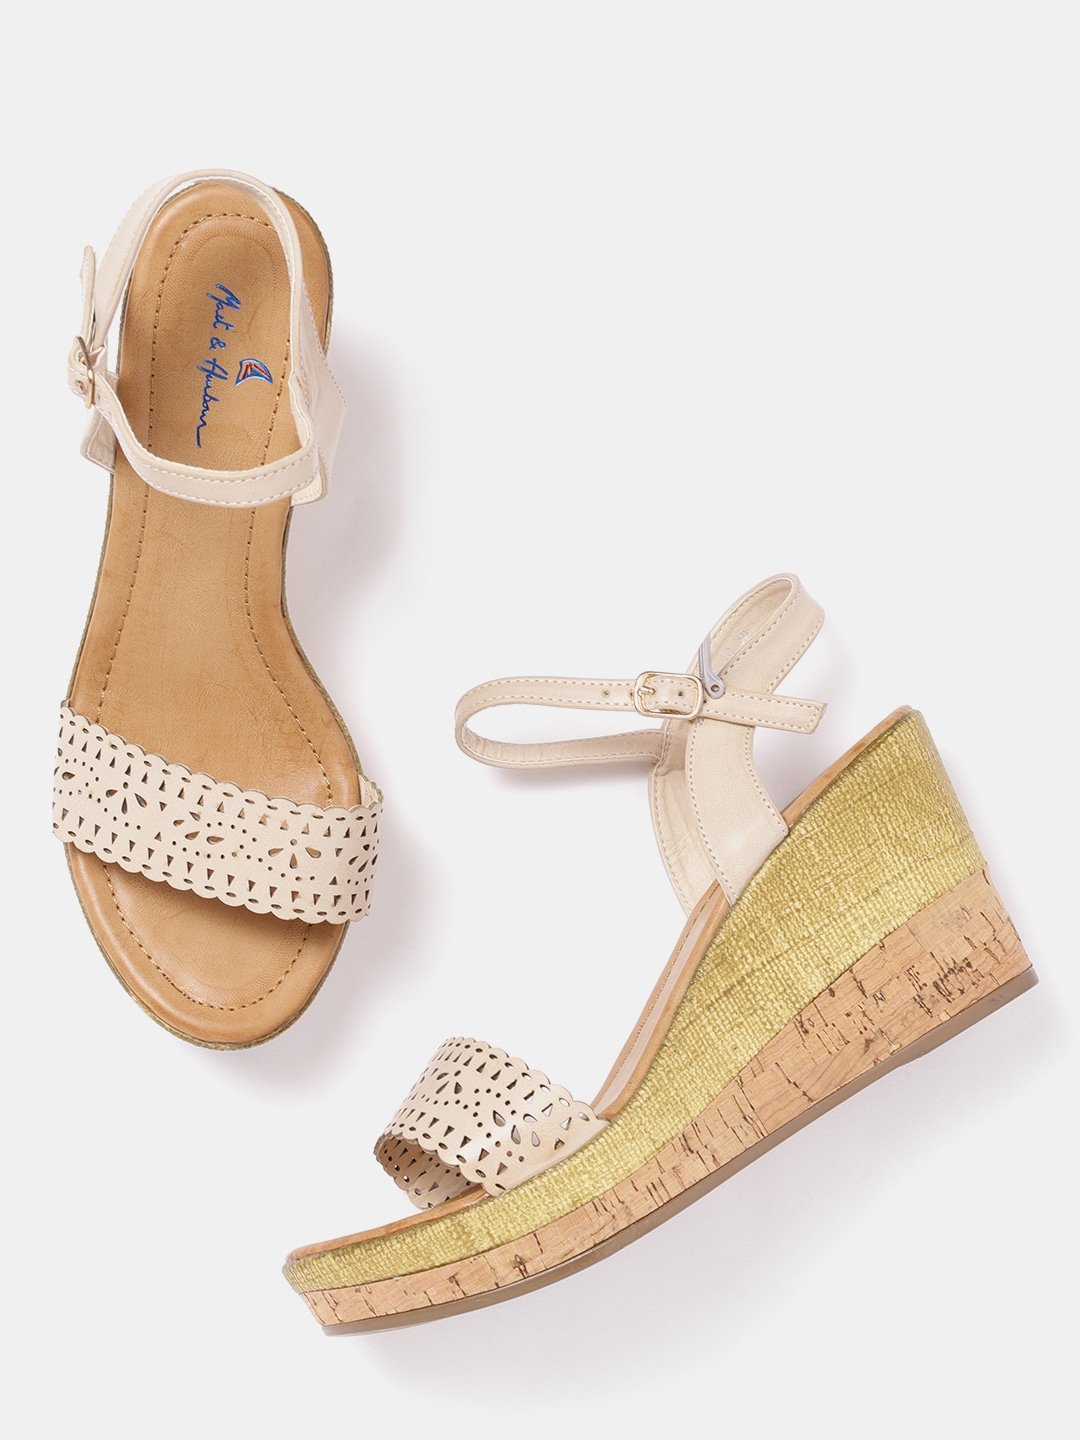 Wedge Heels Buy Online In India At Best Price Mary Janes Straps Circle Block Pointed Toe Wedges Shoes Black